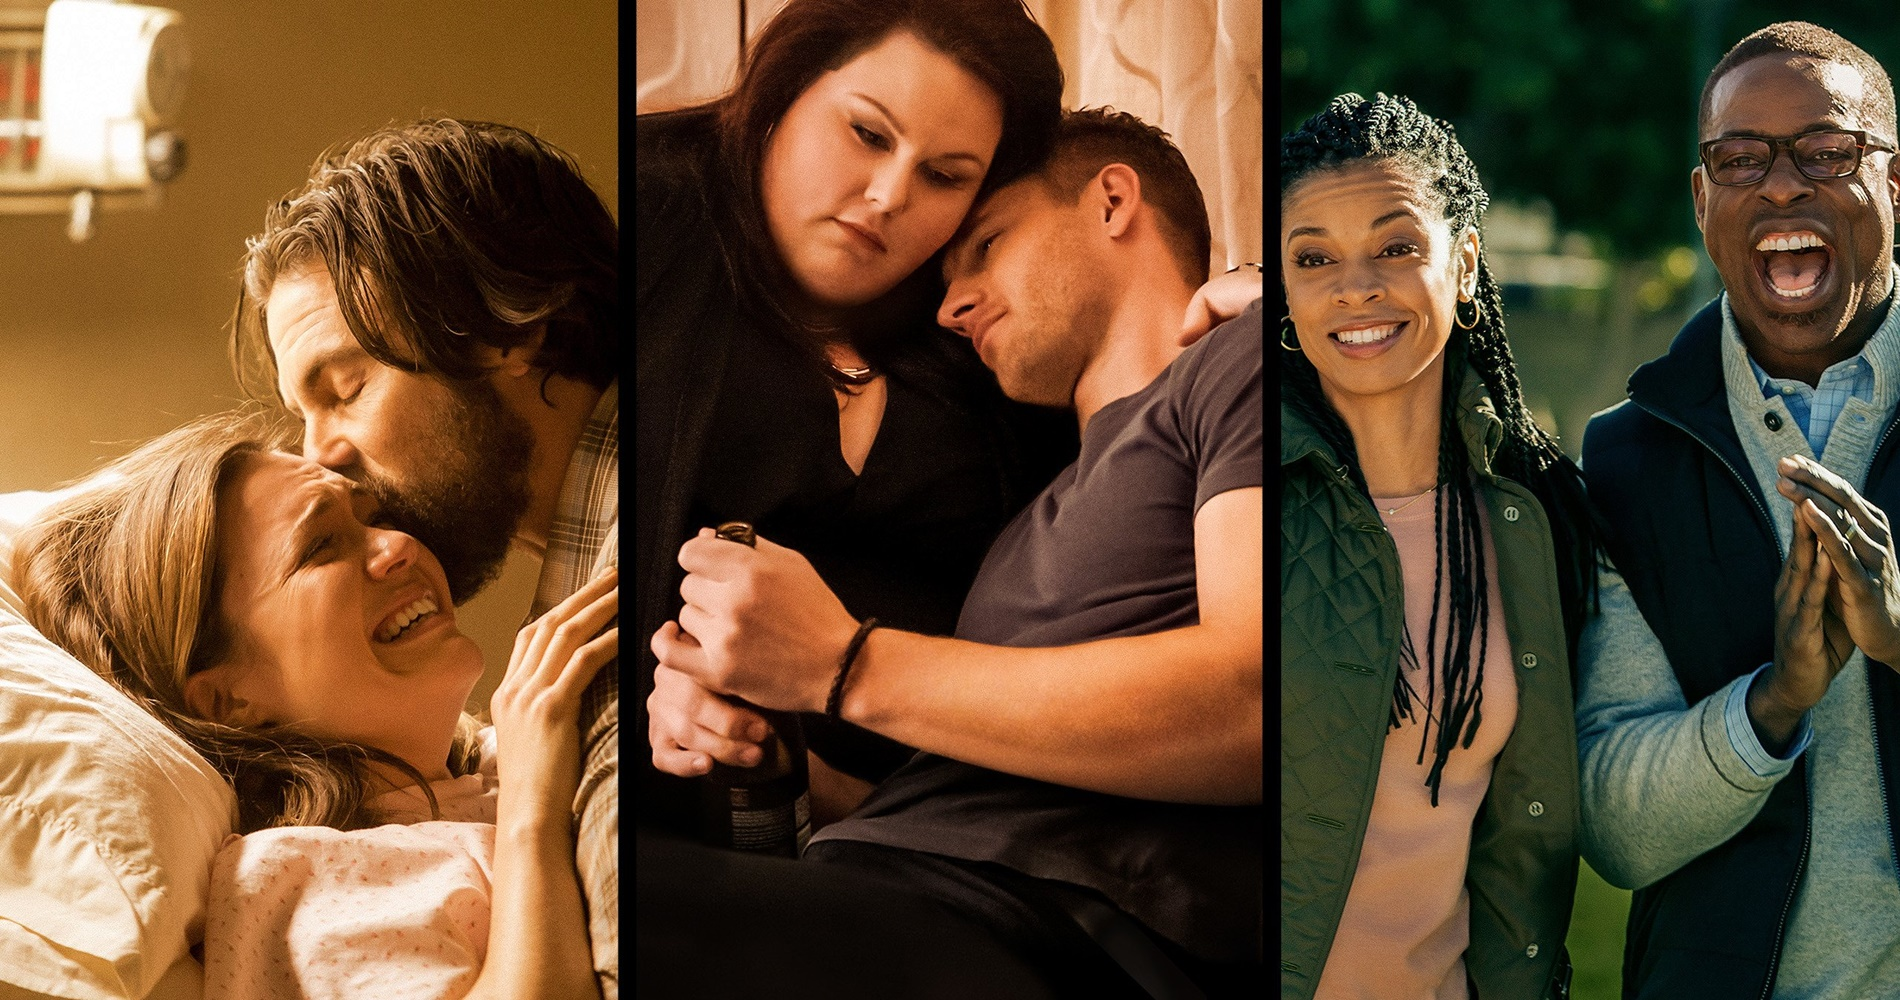 Series of three photos from This Is Us of Jack and Rebecca, Kate and Kevin, and Randall and Beth., movies/tv, pop culture